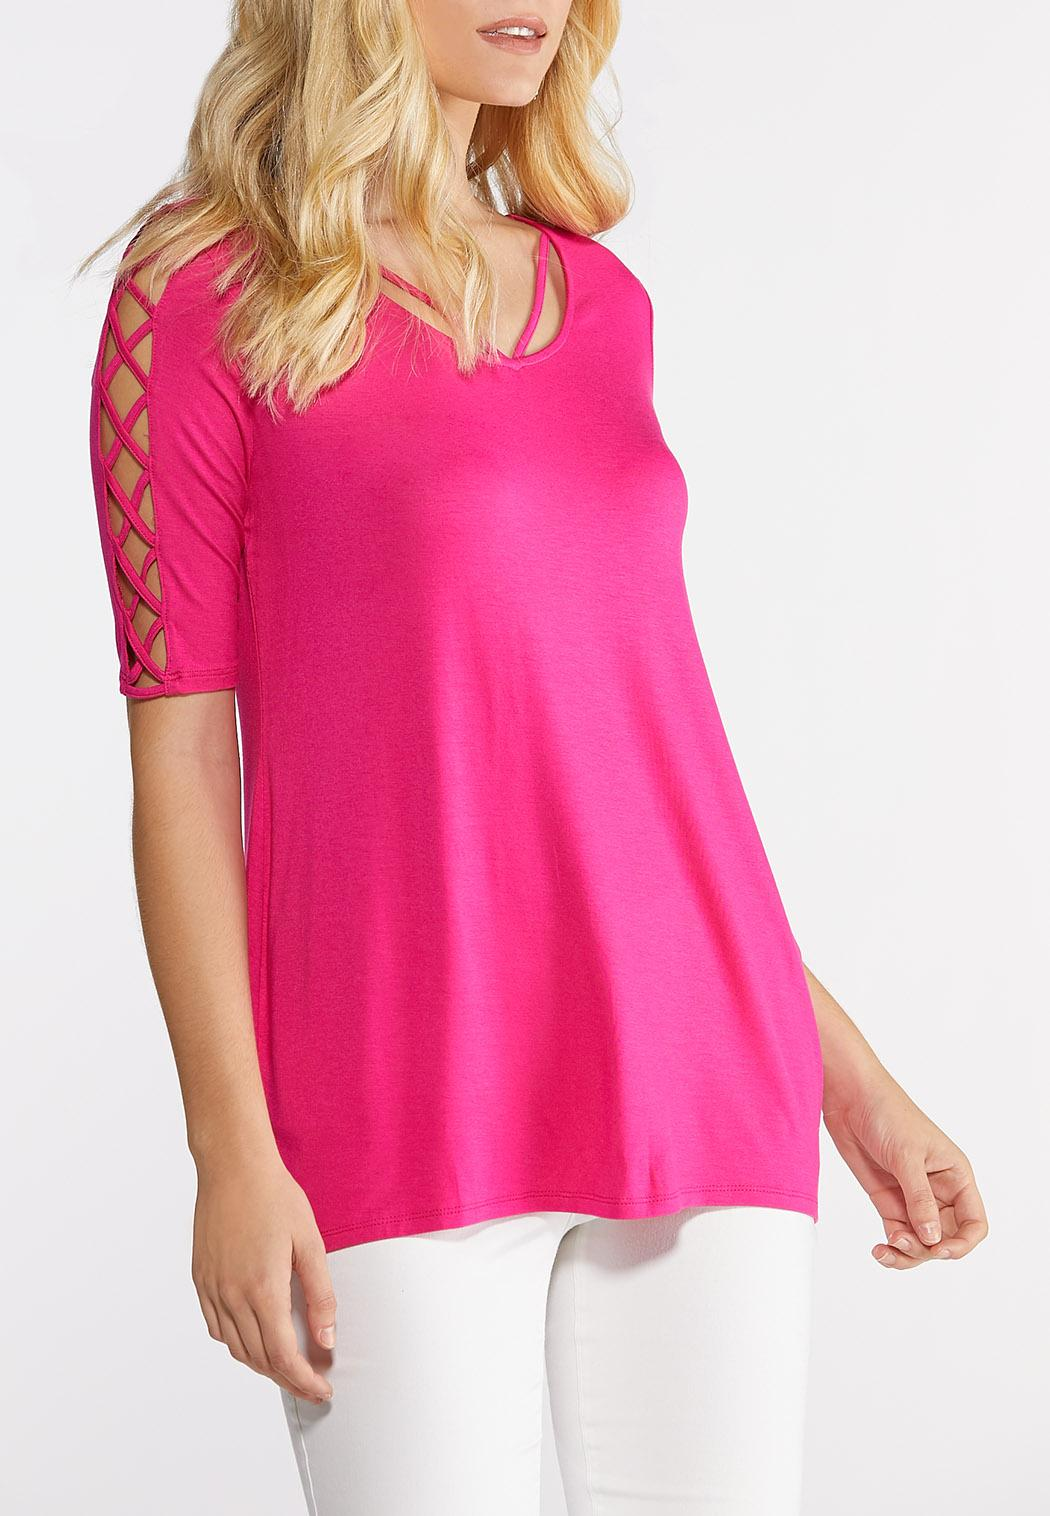 Plus Size Solid Lattice Tee (Item #43872388)